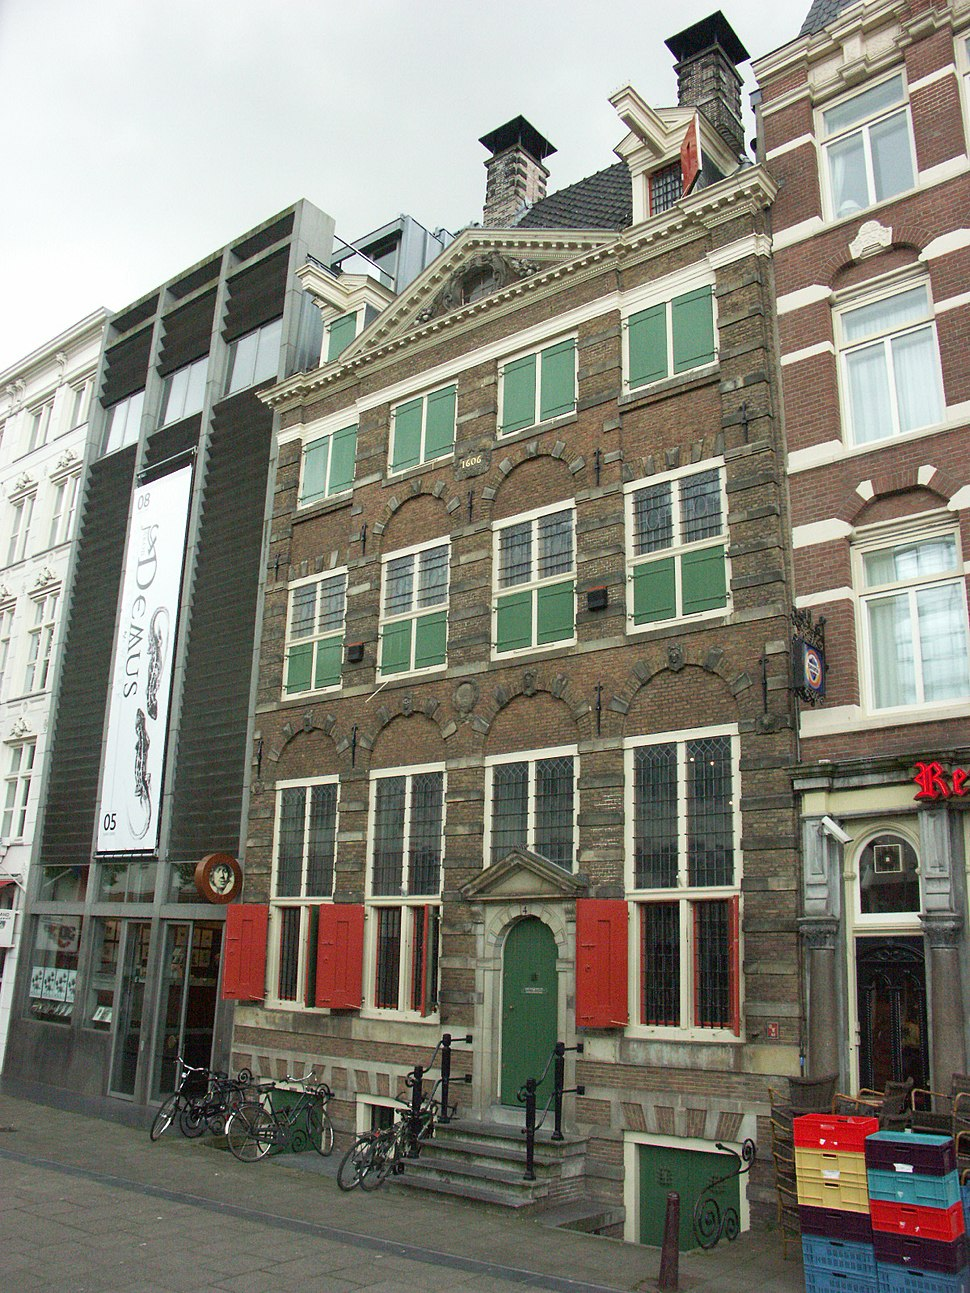 Rembrandts house, Amsterdam